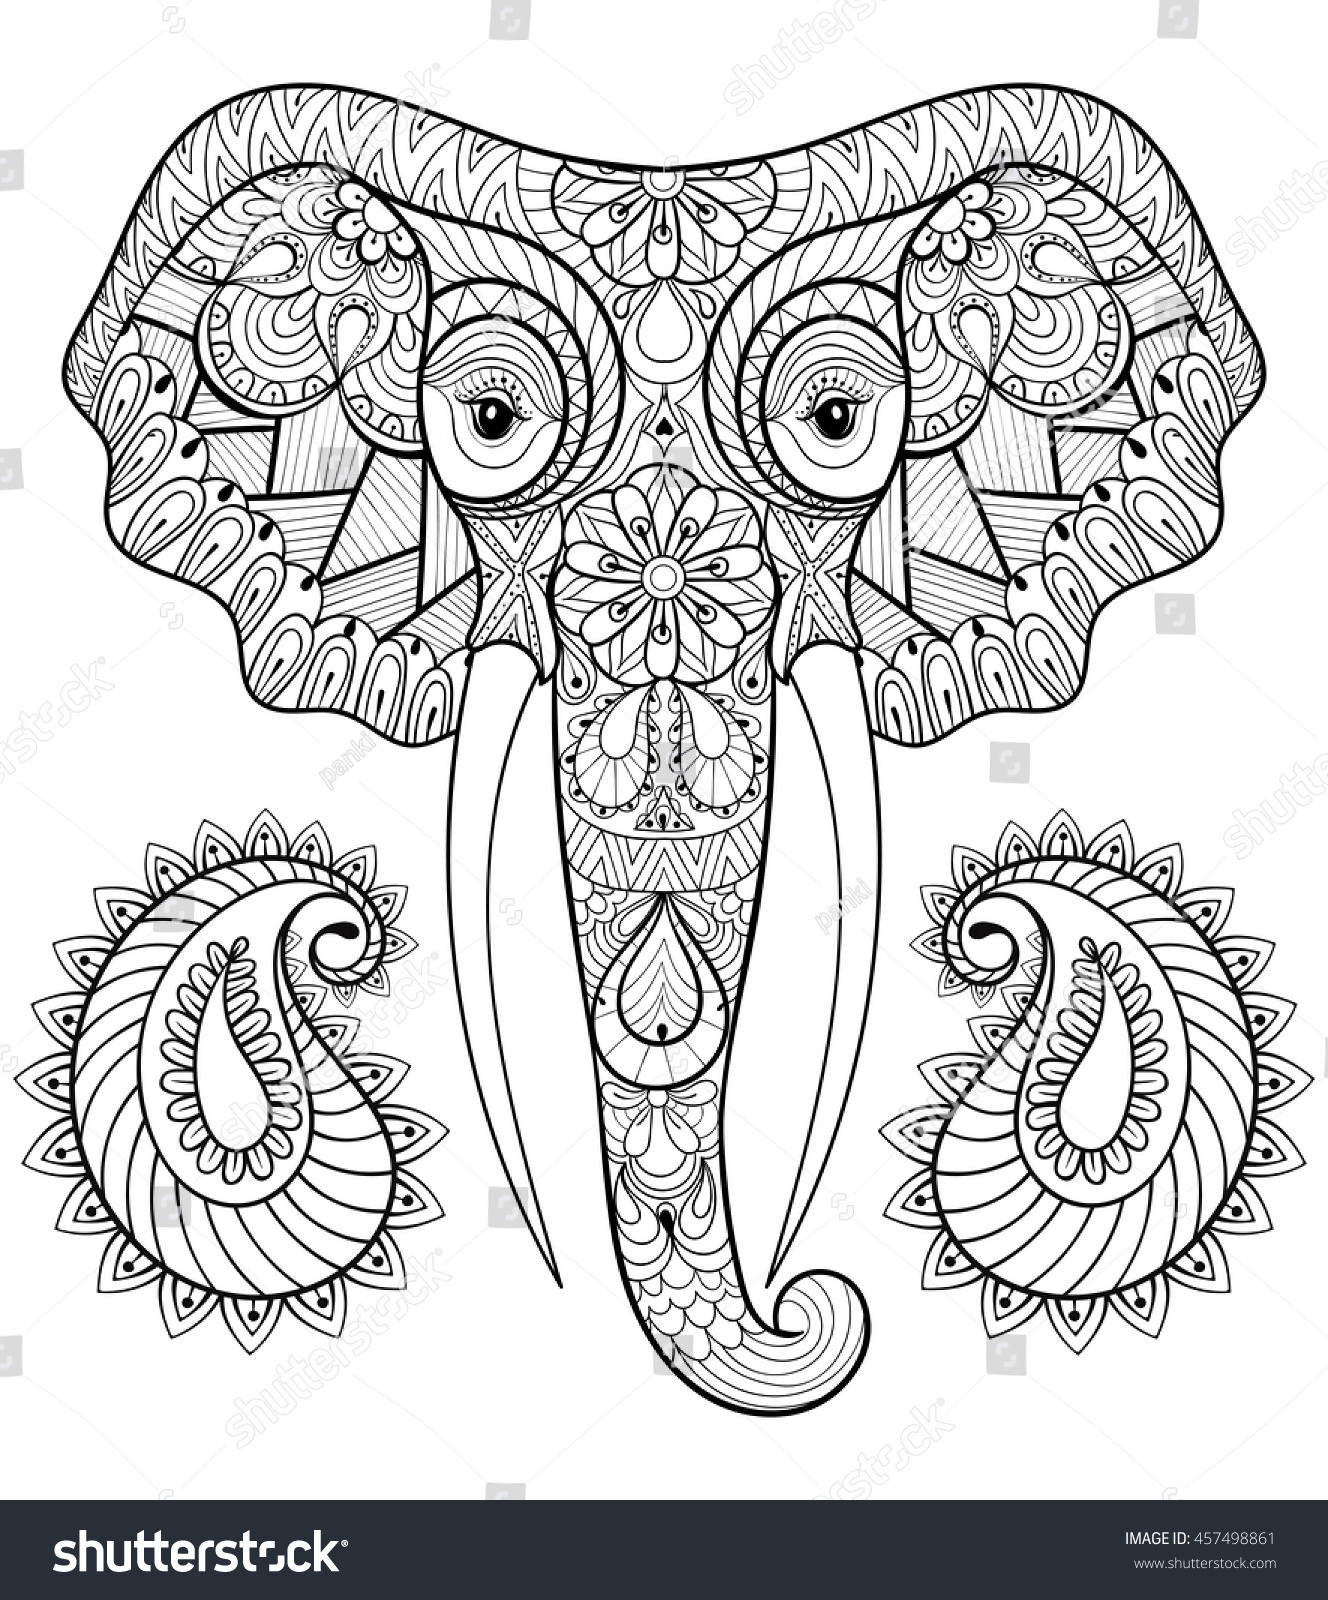 Royalty free zentangle stylized ethnic indian 457498861 for Paisley elephant coloring pages